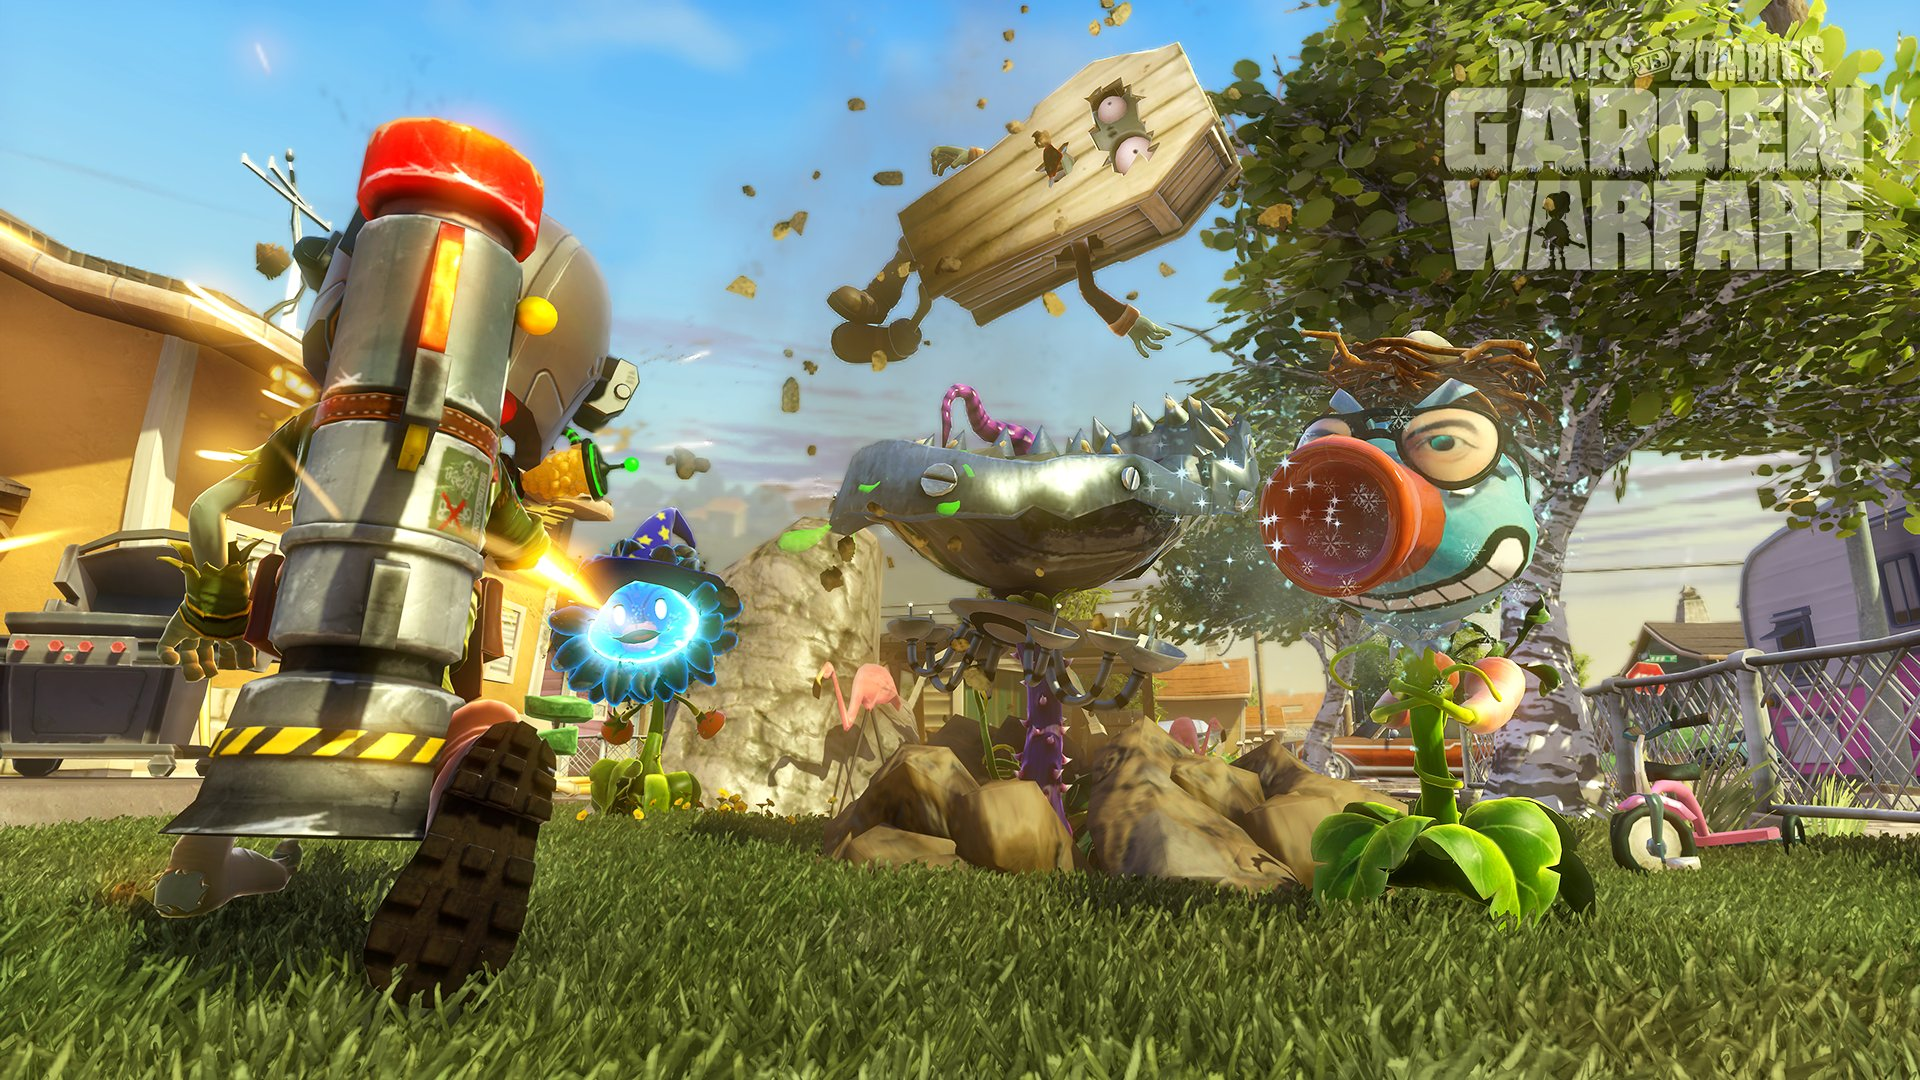 Garden Warfare Is Getting New Content Today, April 15